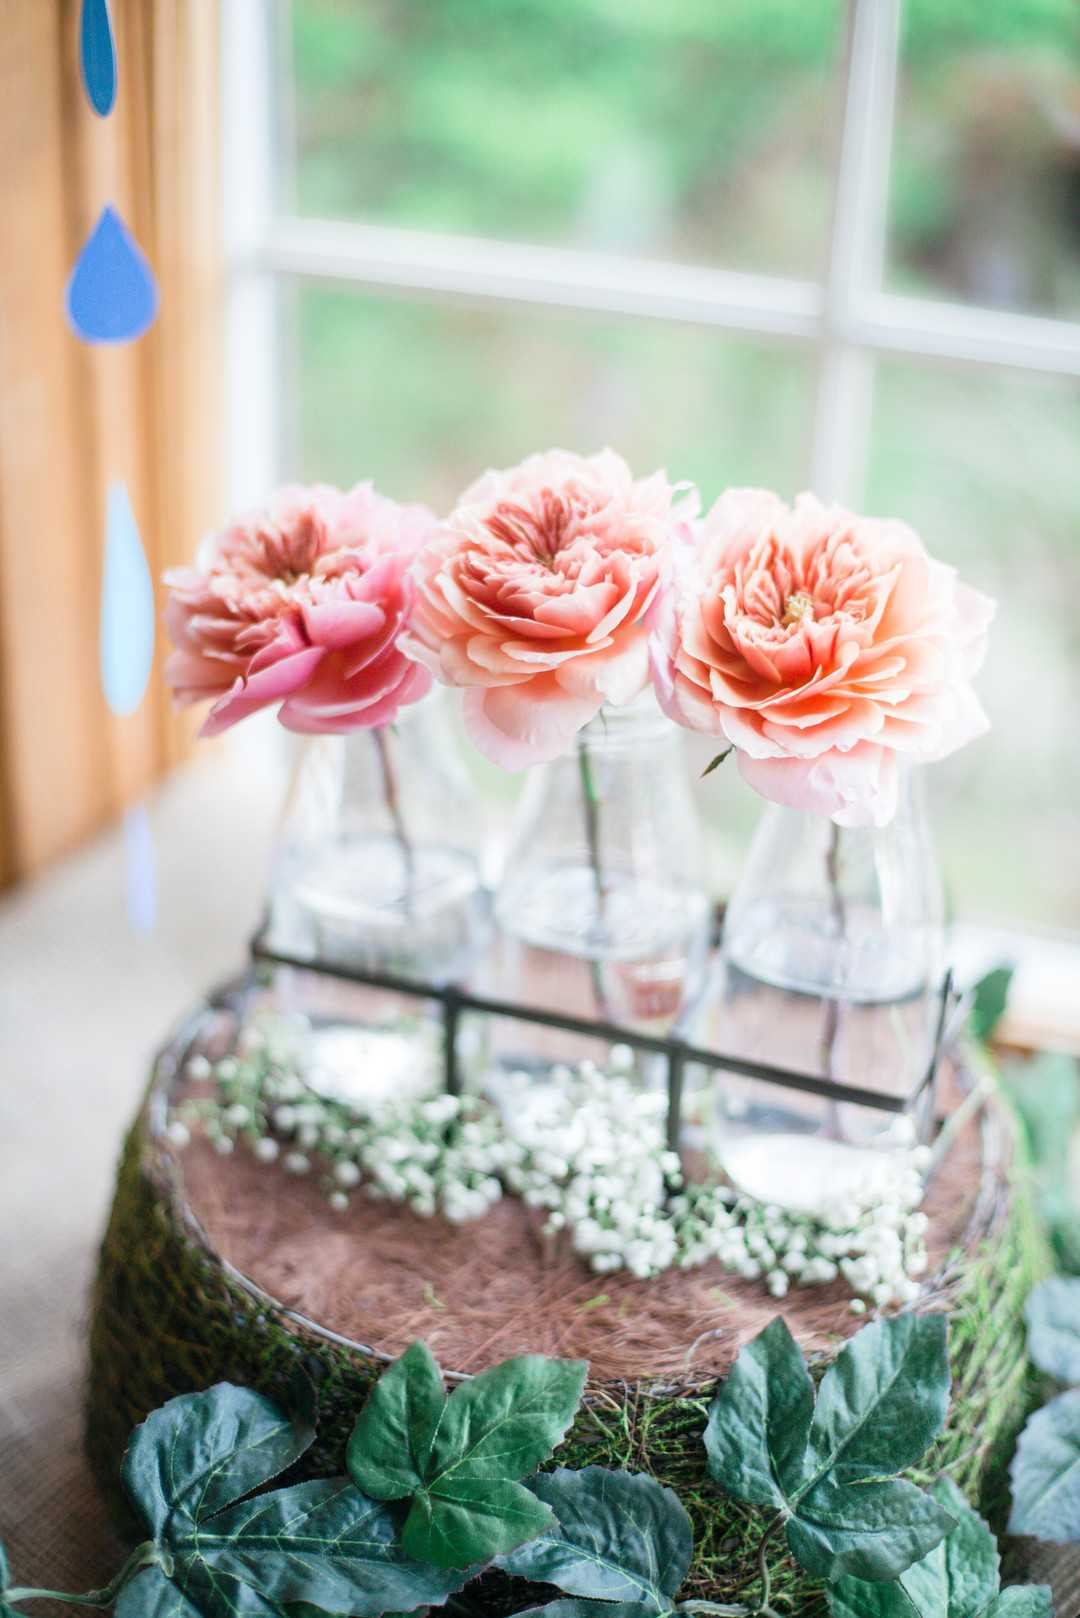 Floral Decor | An April Showers Brings May Flowers Baby Shower | Kate Aspen